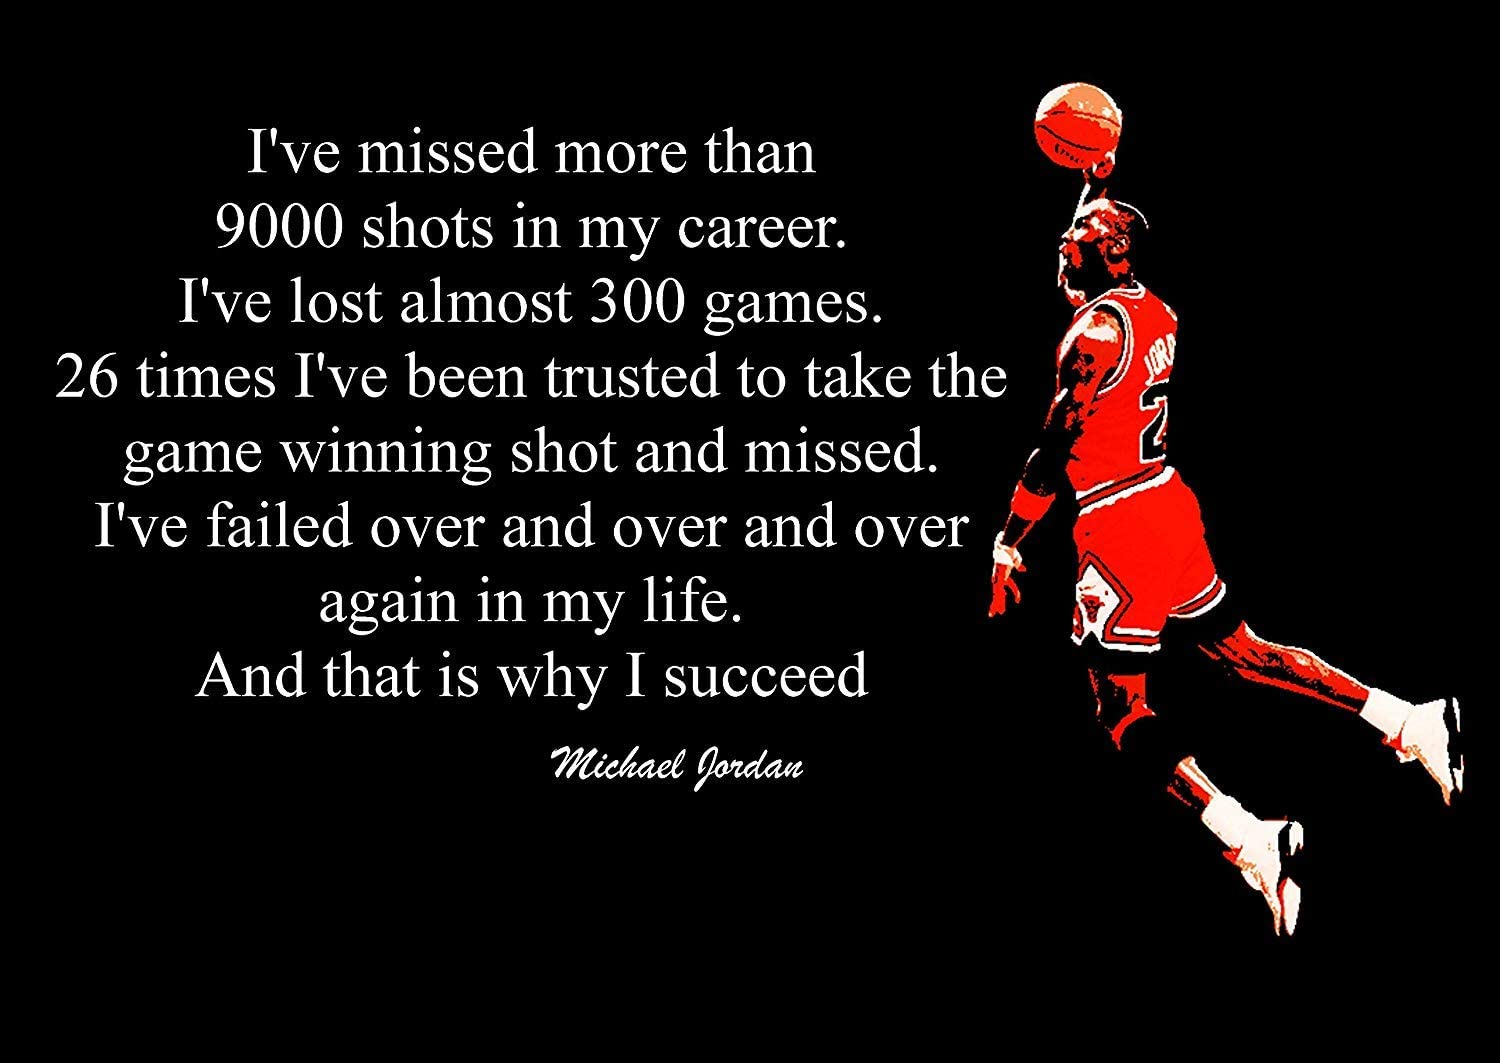 Tableta sin embargo respuesta  Michael Jordan 1# A4 Unframed American Basketball Player NBA Sport Quote  Poster Motivation Picture Succeed Inspiration Photo Train Hard Bedroom  Artwork Wall Decoration Reprint Graphic: Amazon.co.uk: Welcome